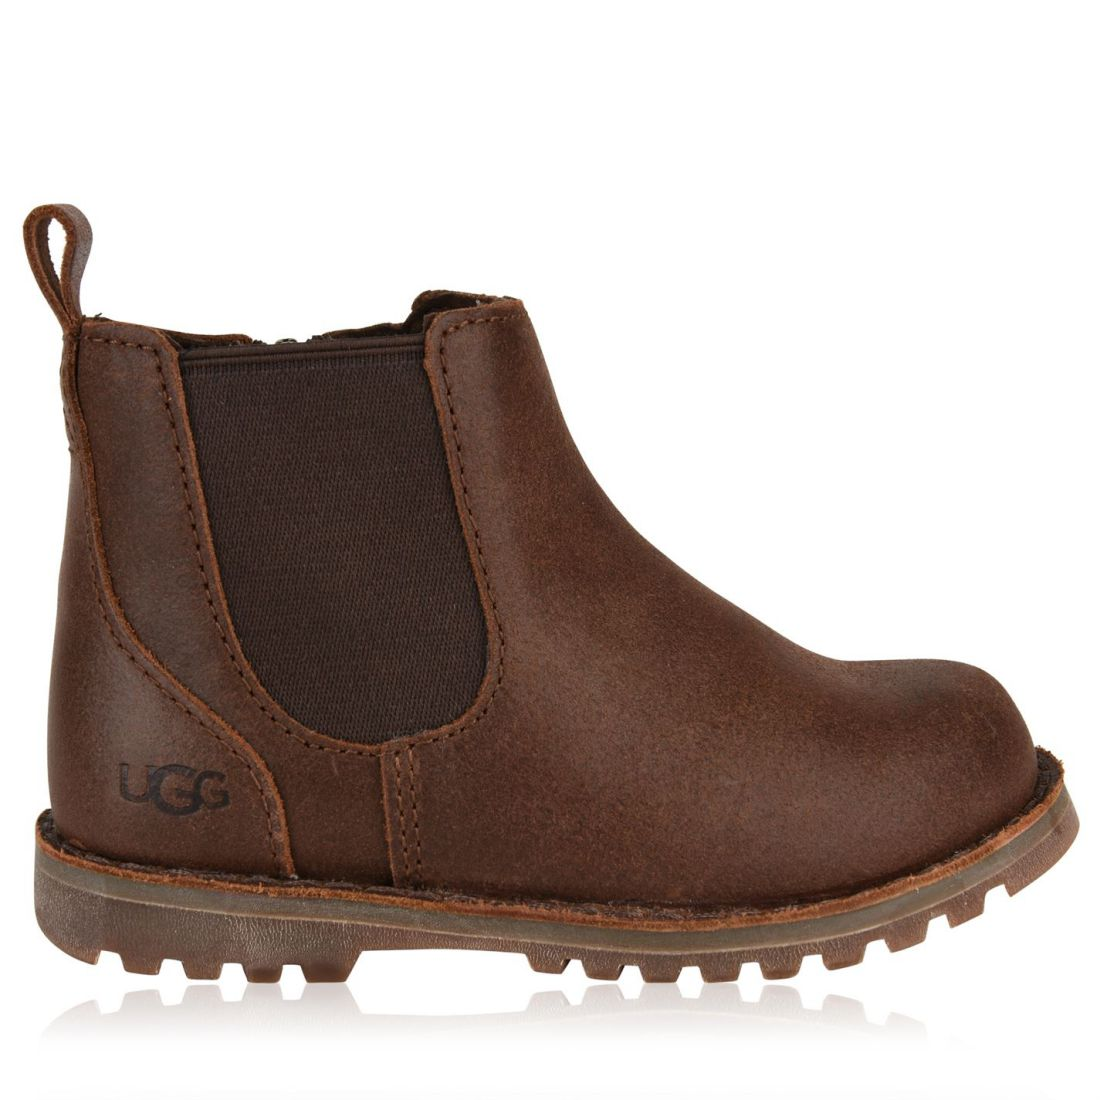 3307c67c83b Details about Kids Boys Ugg Callum Ankle Boots Zip New